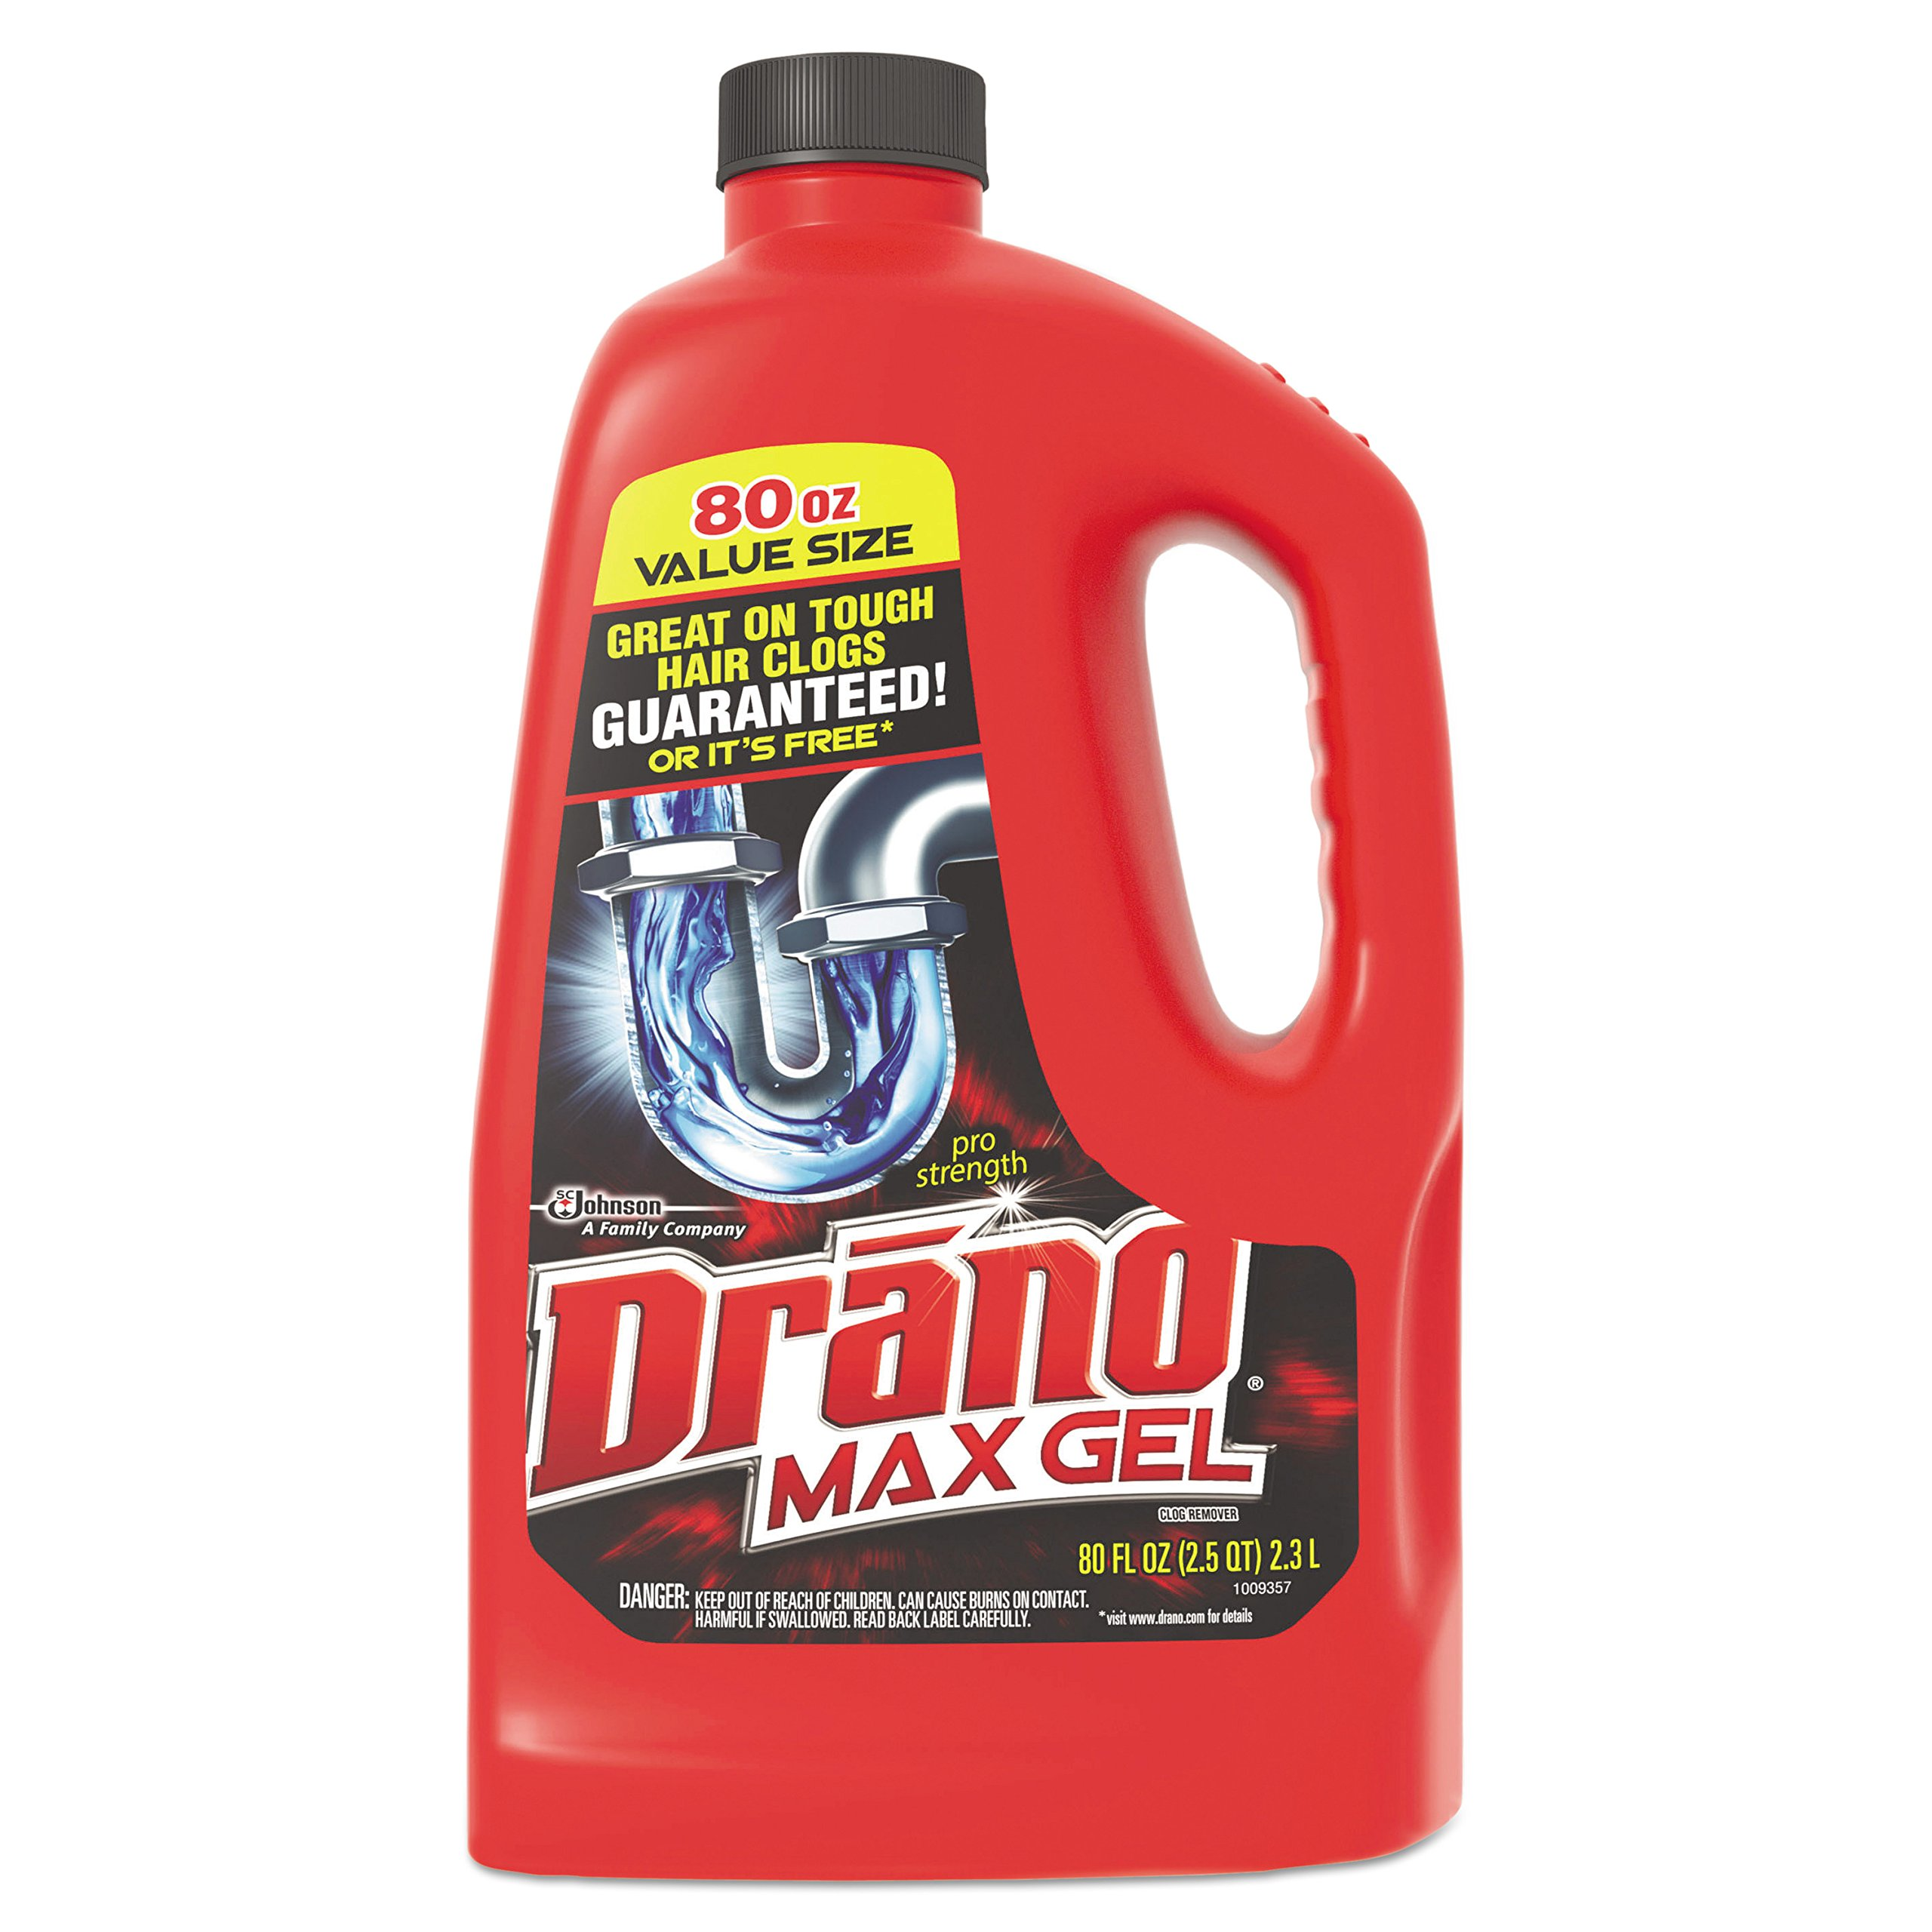 Drano DRK CB401099 Max Gel Clog Remover, 2.5 sq. ft. Bottle (Pack of 6) by Drano